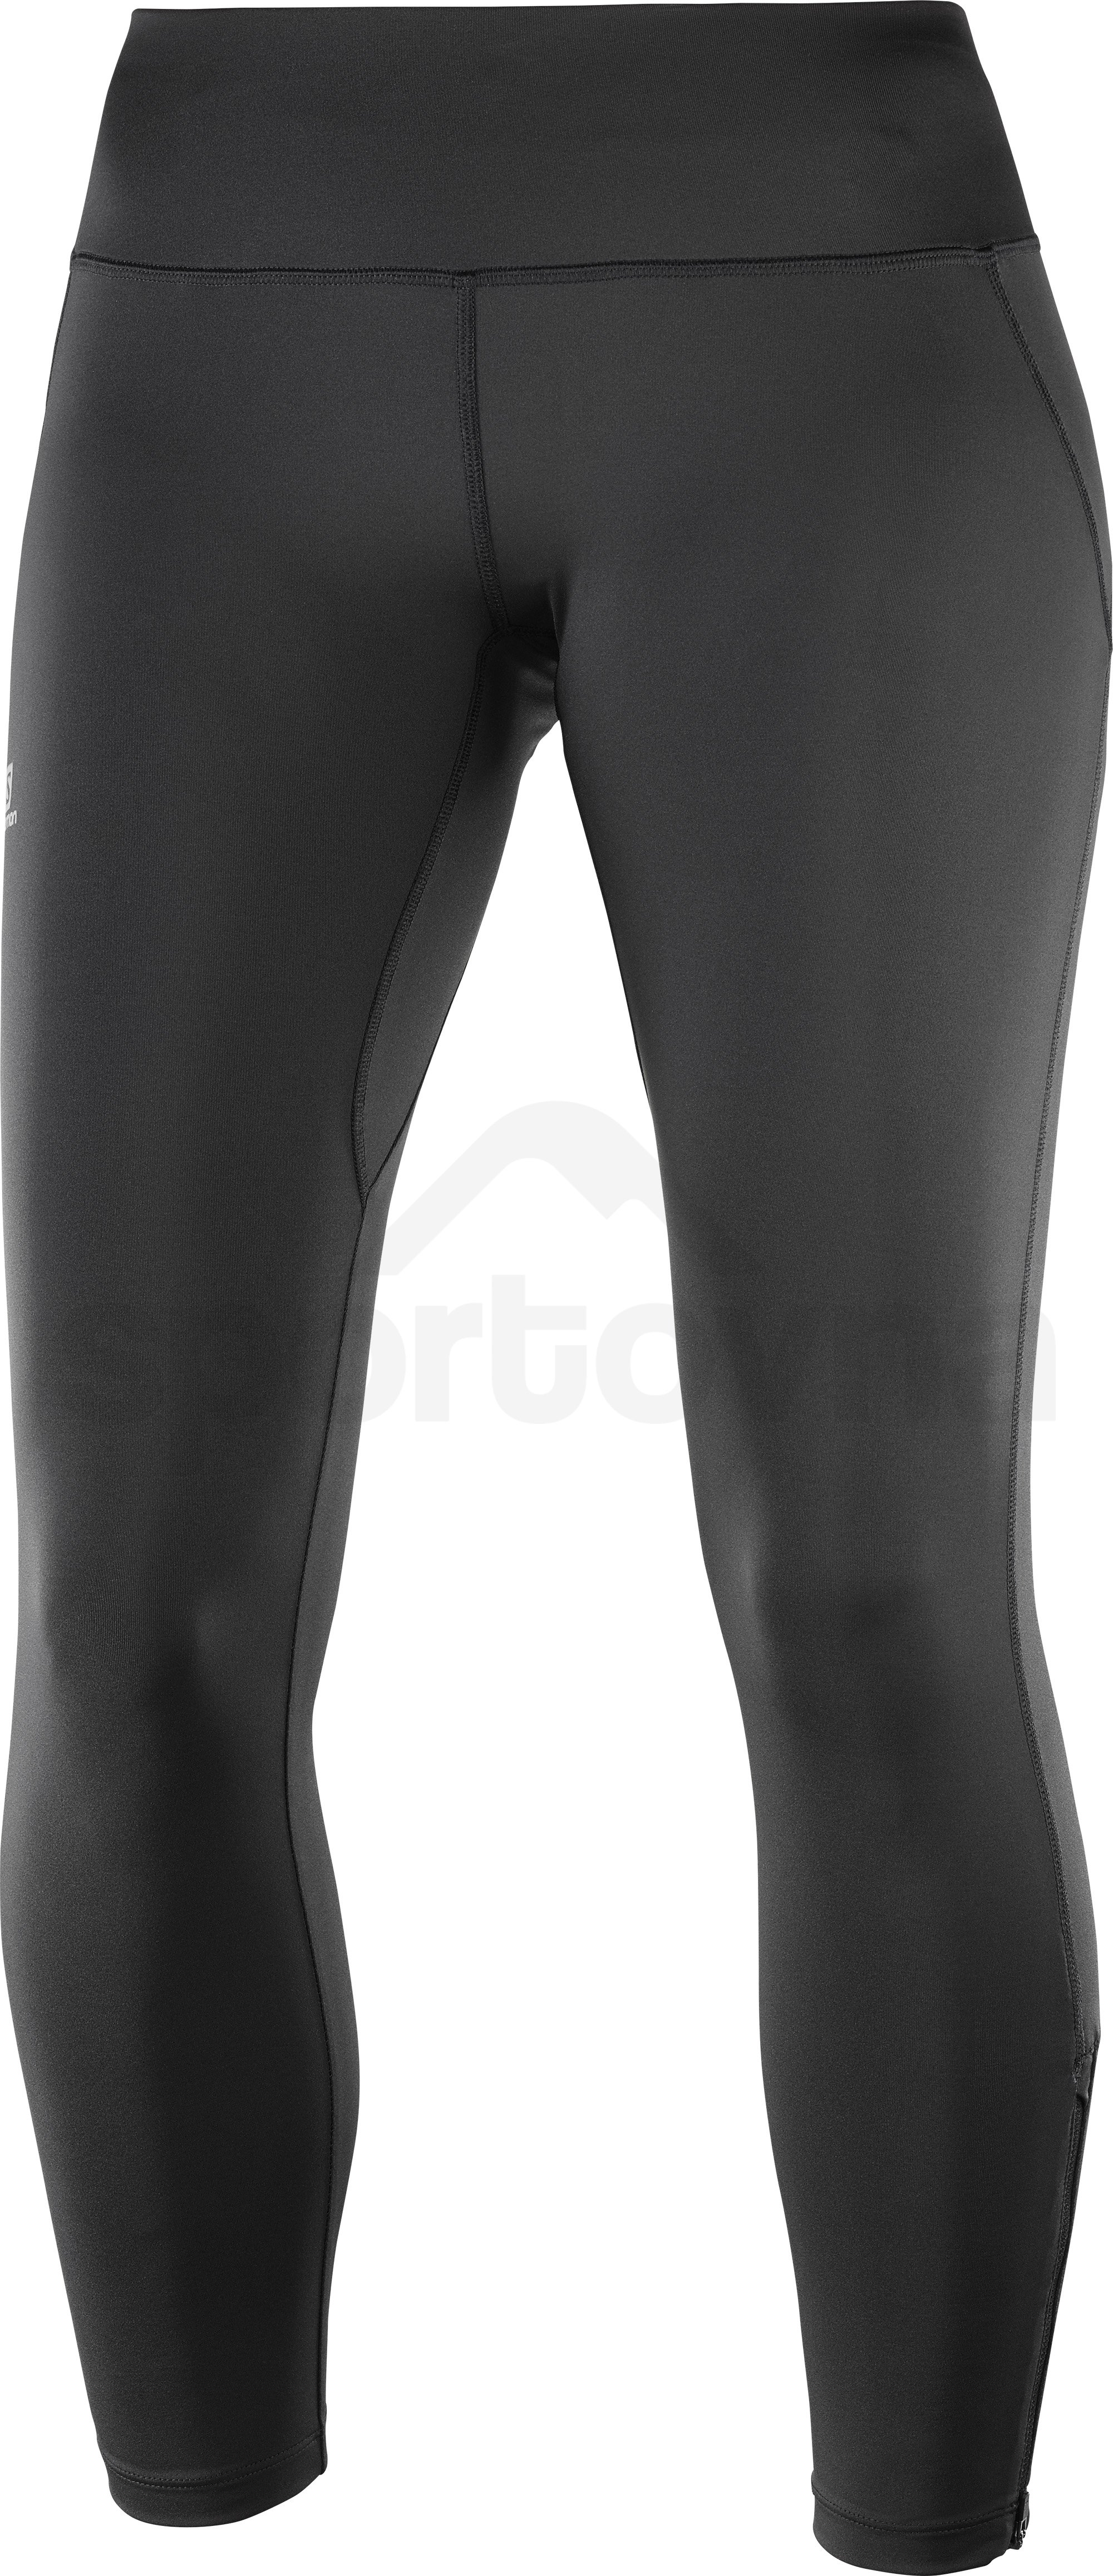 L40125900_0_w_agilelongtight_black_running.jpg.originalg